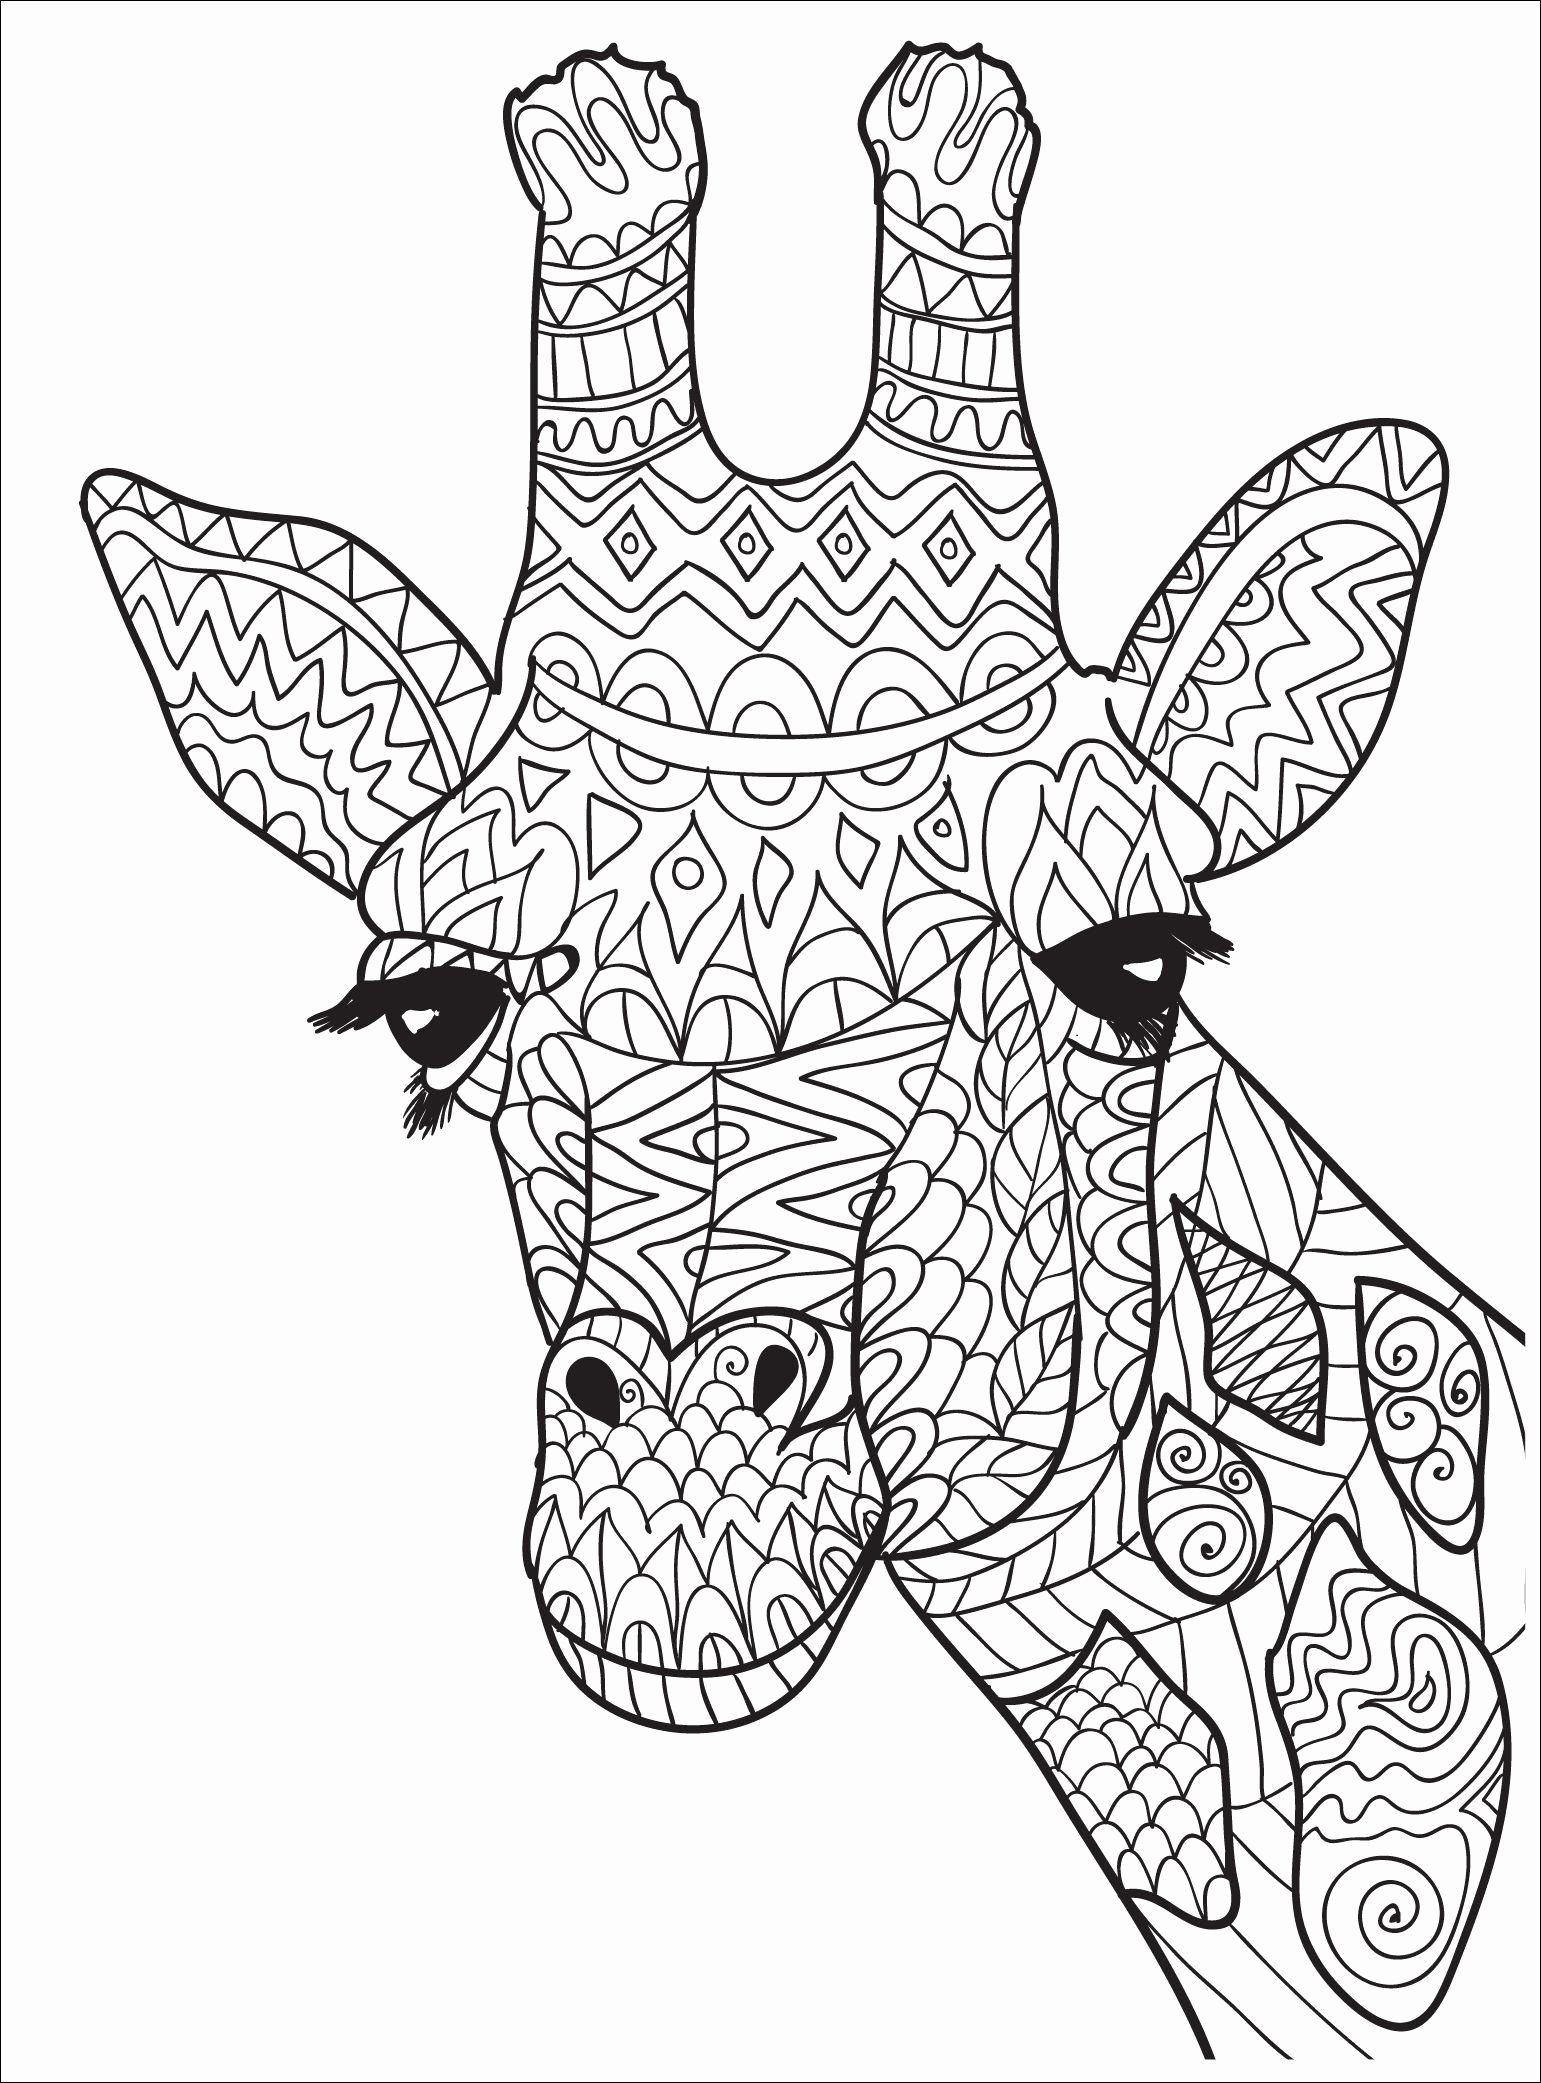 Advanced Coloring Pages Animals Unique 23 New Image Cute Animal Coloring Page For Adults Giraffe Coloring Pages Animal Coloring Pages Giraffe Colors